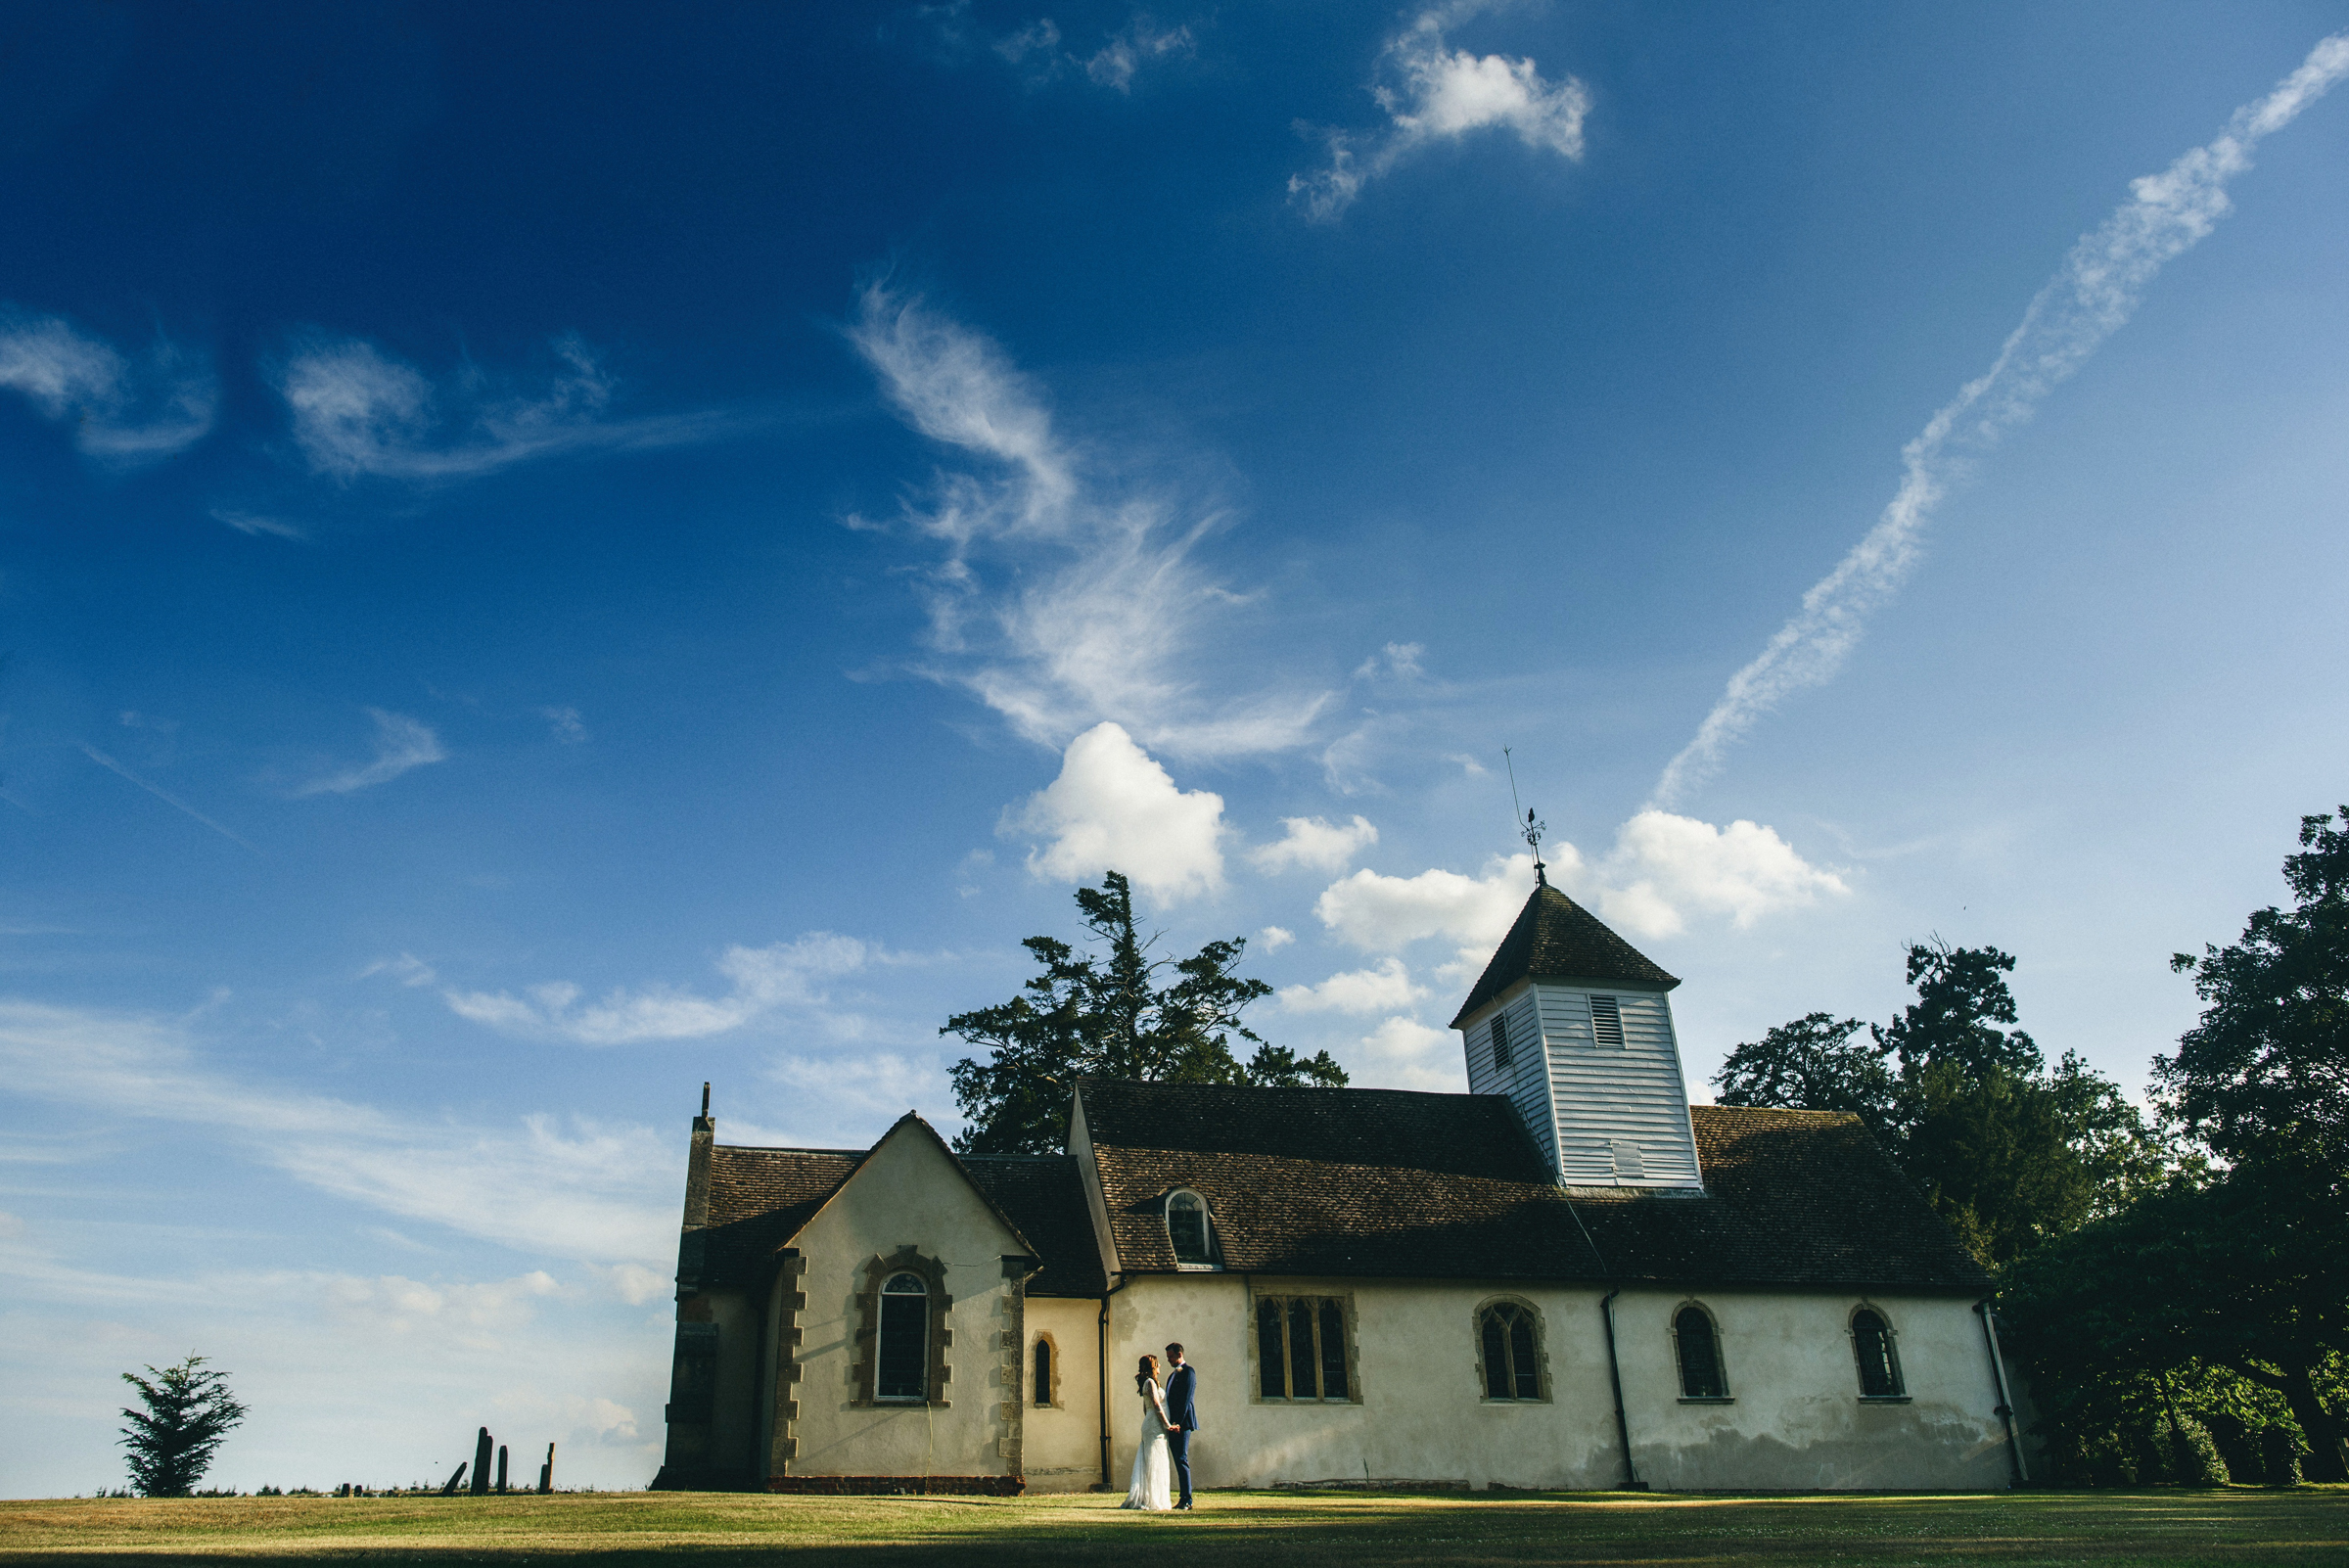 Landscape couple outside ancient country church - photo by MIKI Studios